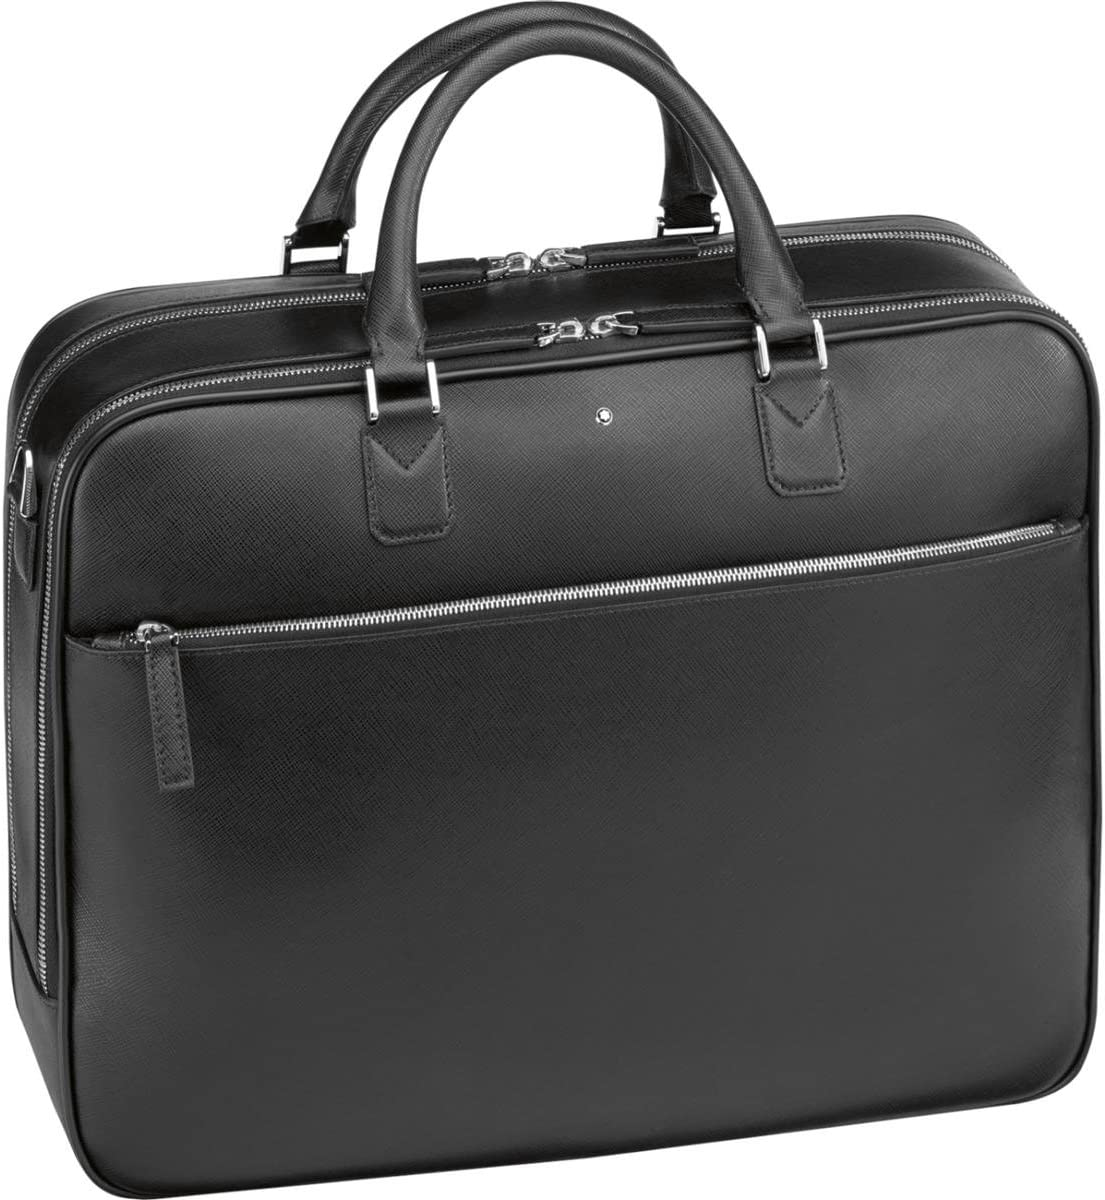 Montblanc Messenger Bag, Black Schwarz , 41 centimeters